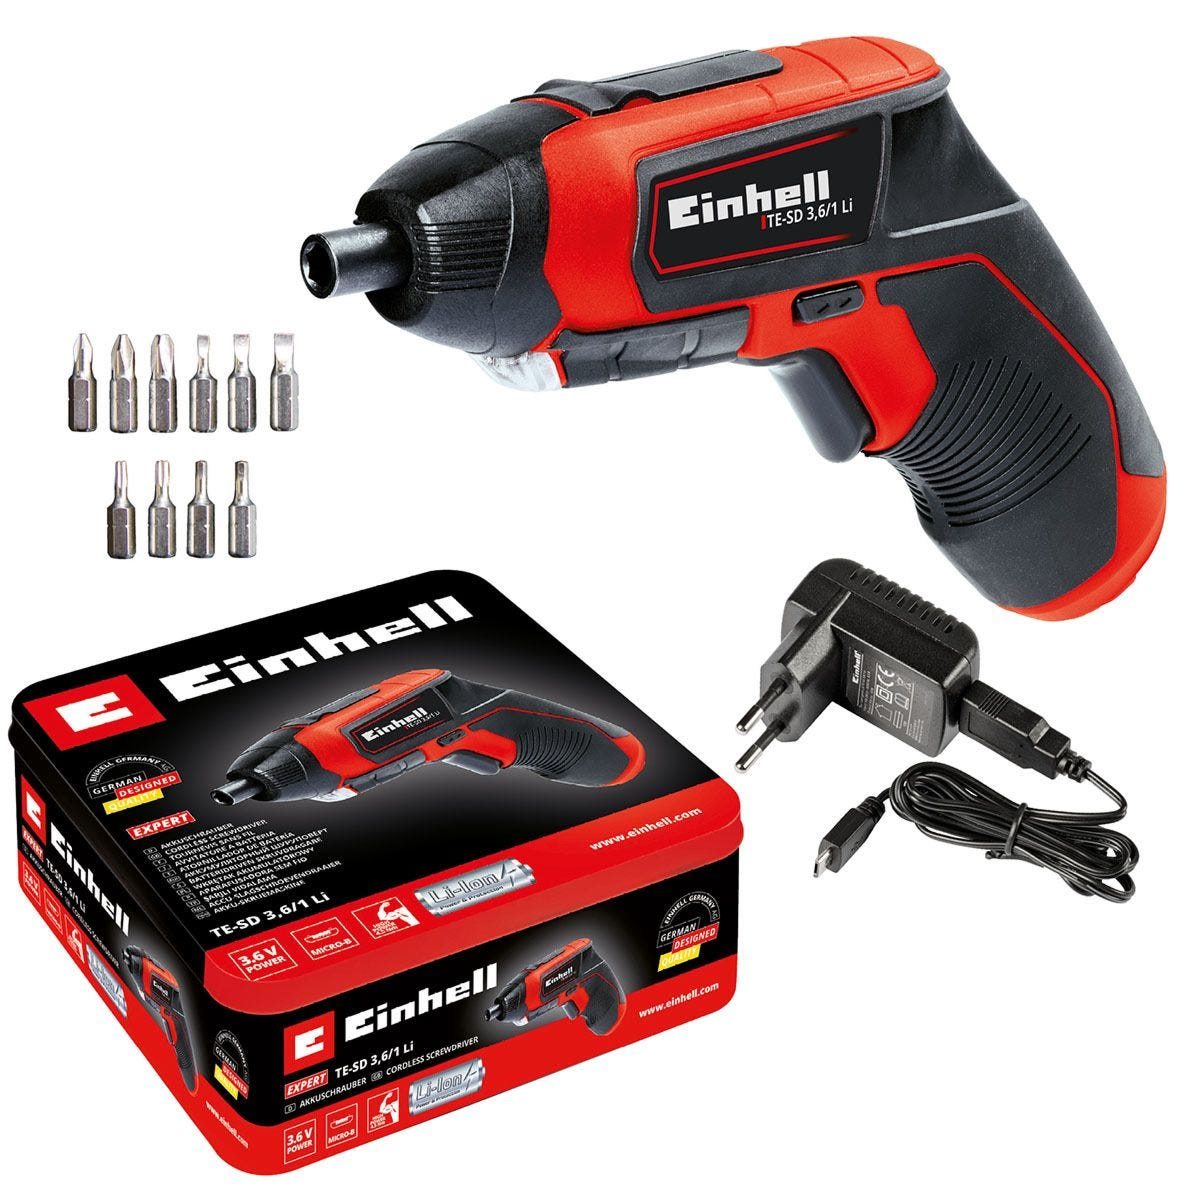 Einhell 3.6V Cordless Screwdriver with 10 Bits